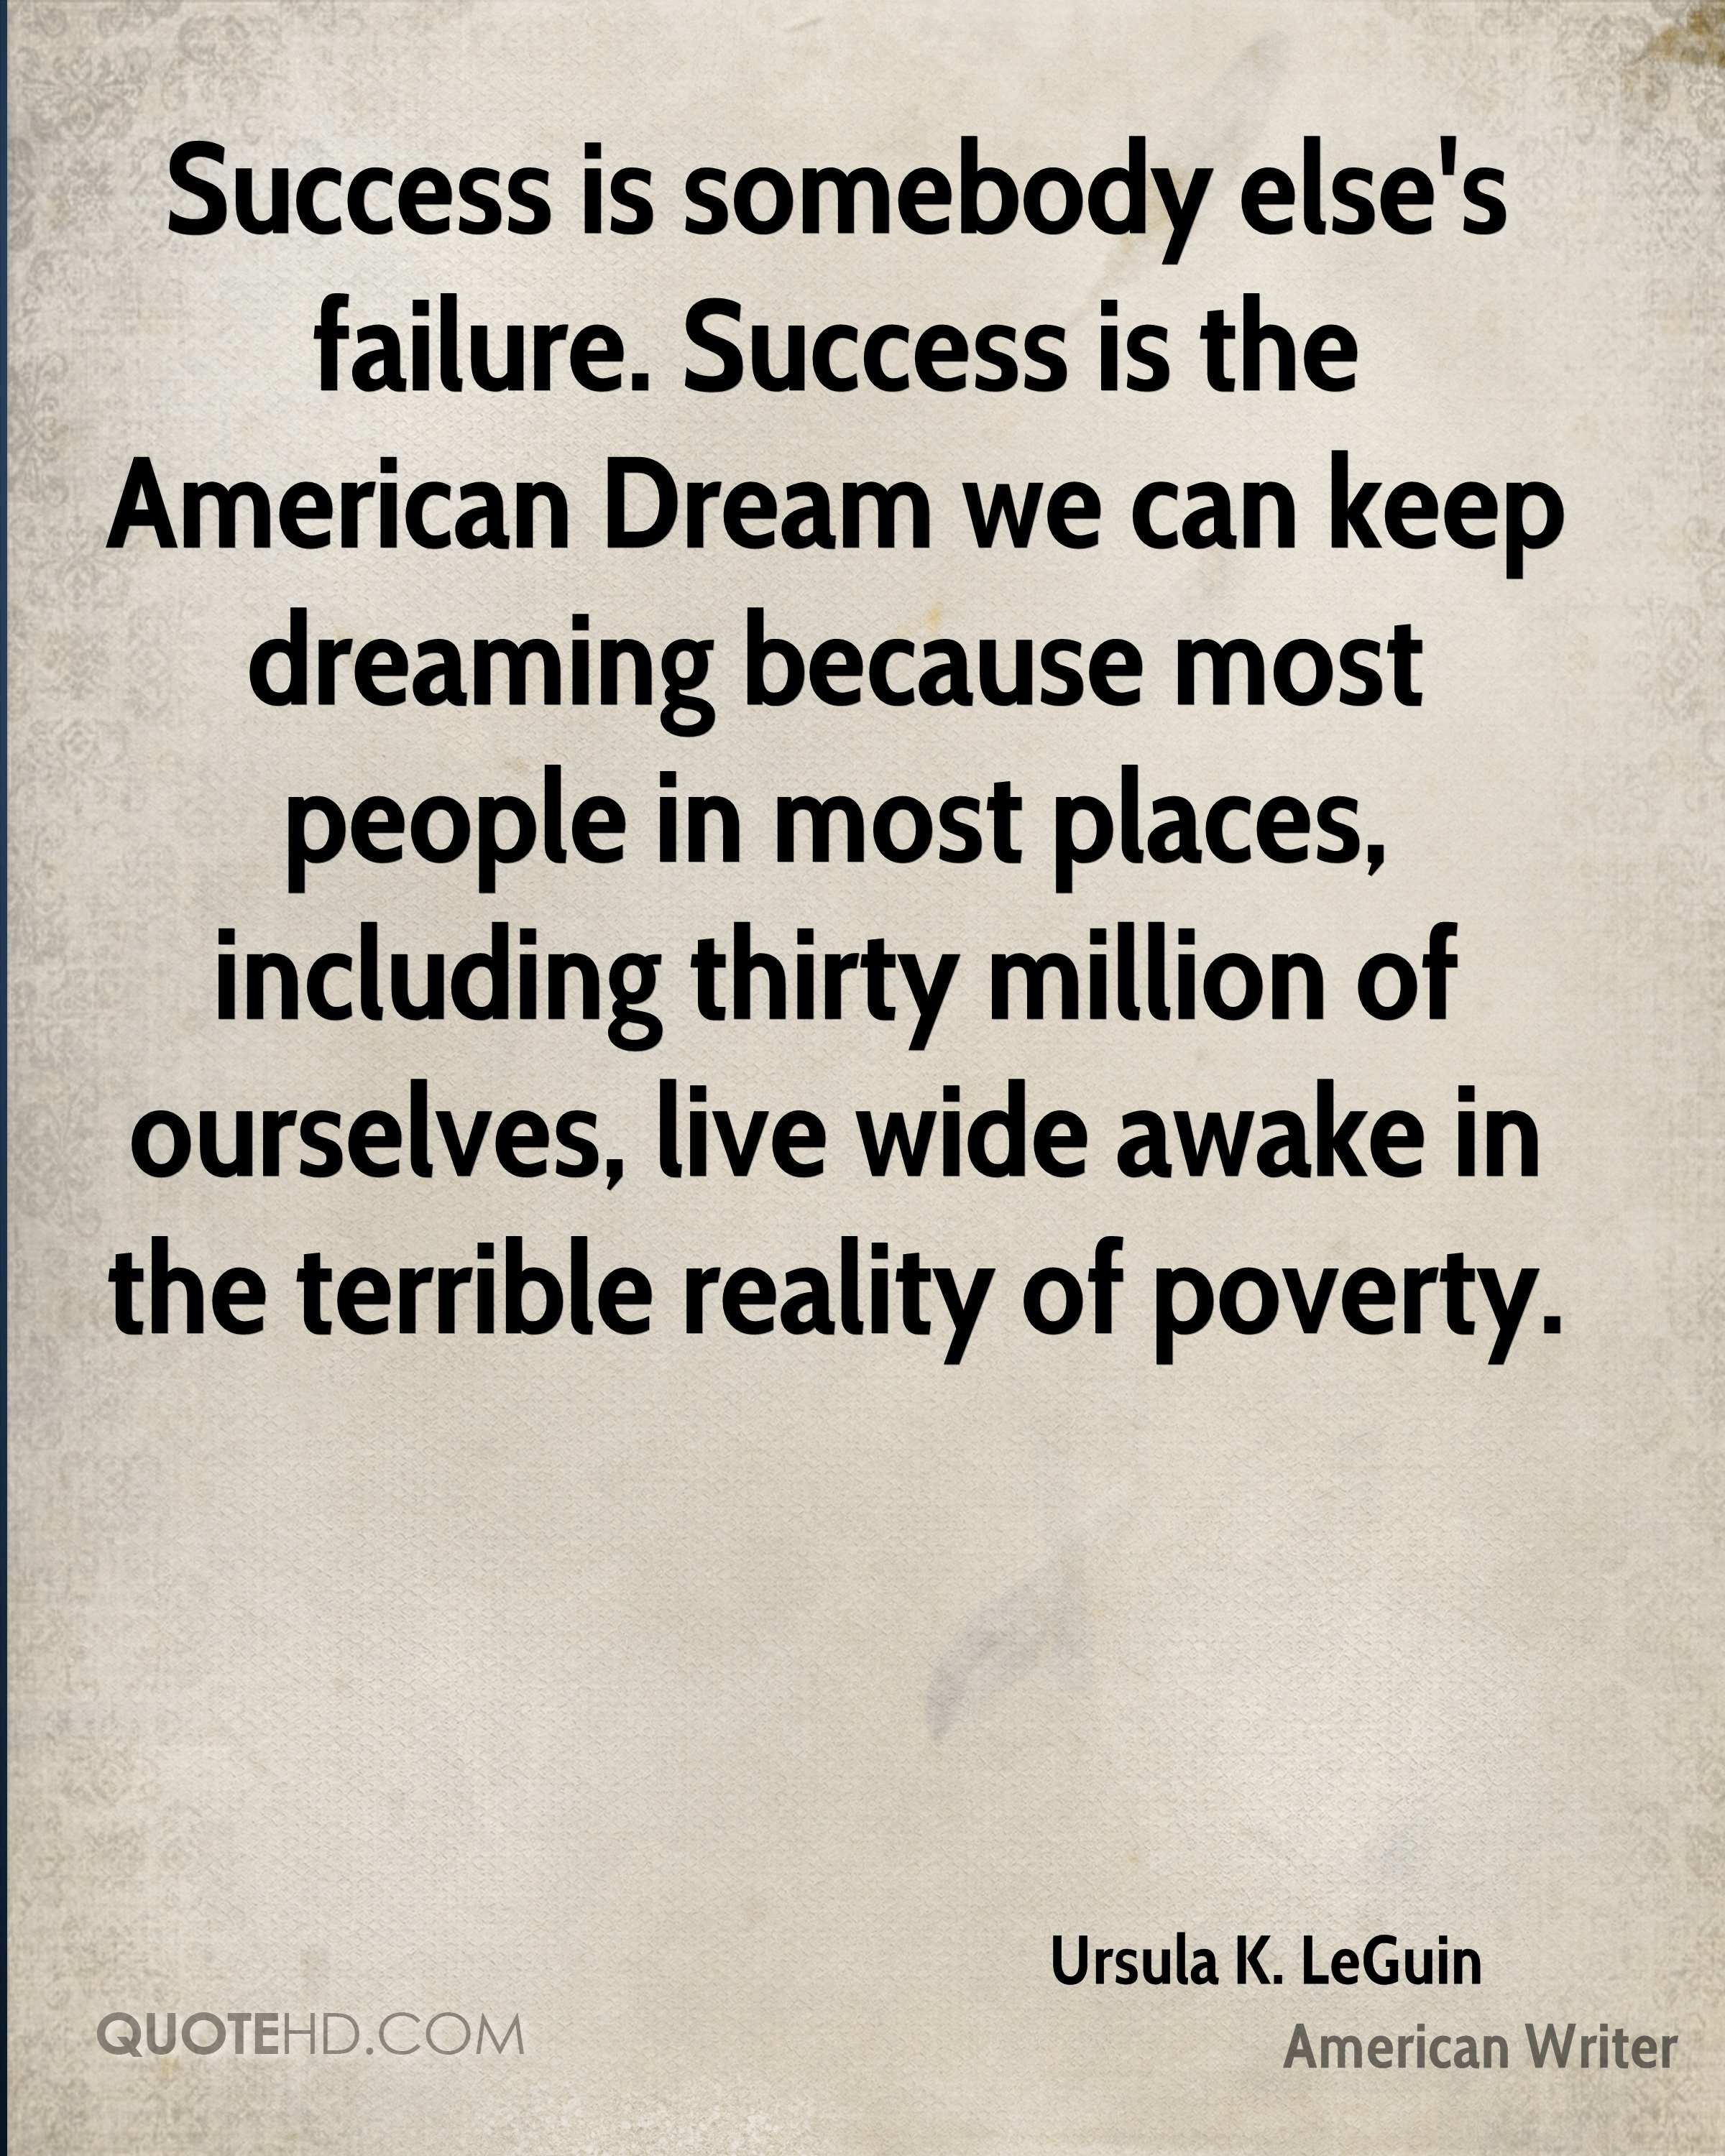 failure of the american dream essay @timhourigan21 idk i guess we will start the cause and effect essay tmrw opinion essay tourism industry immigration american dream essay failure american dream.